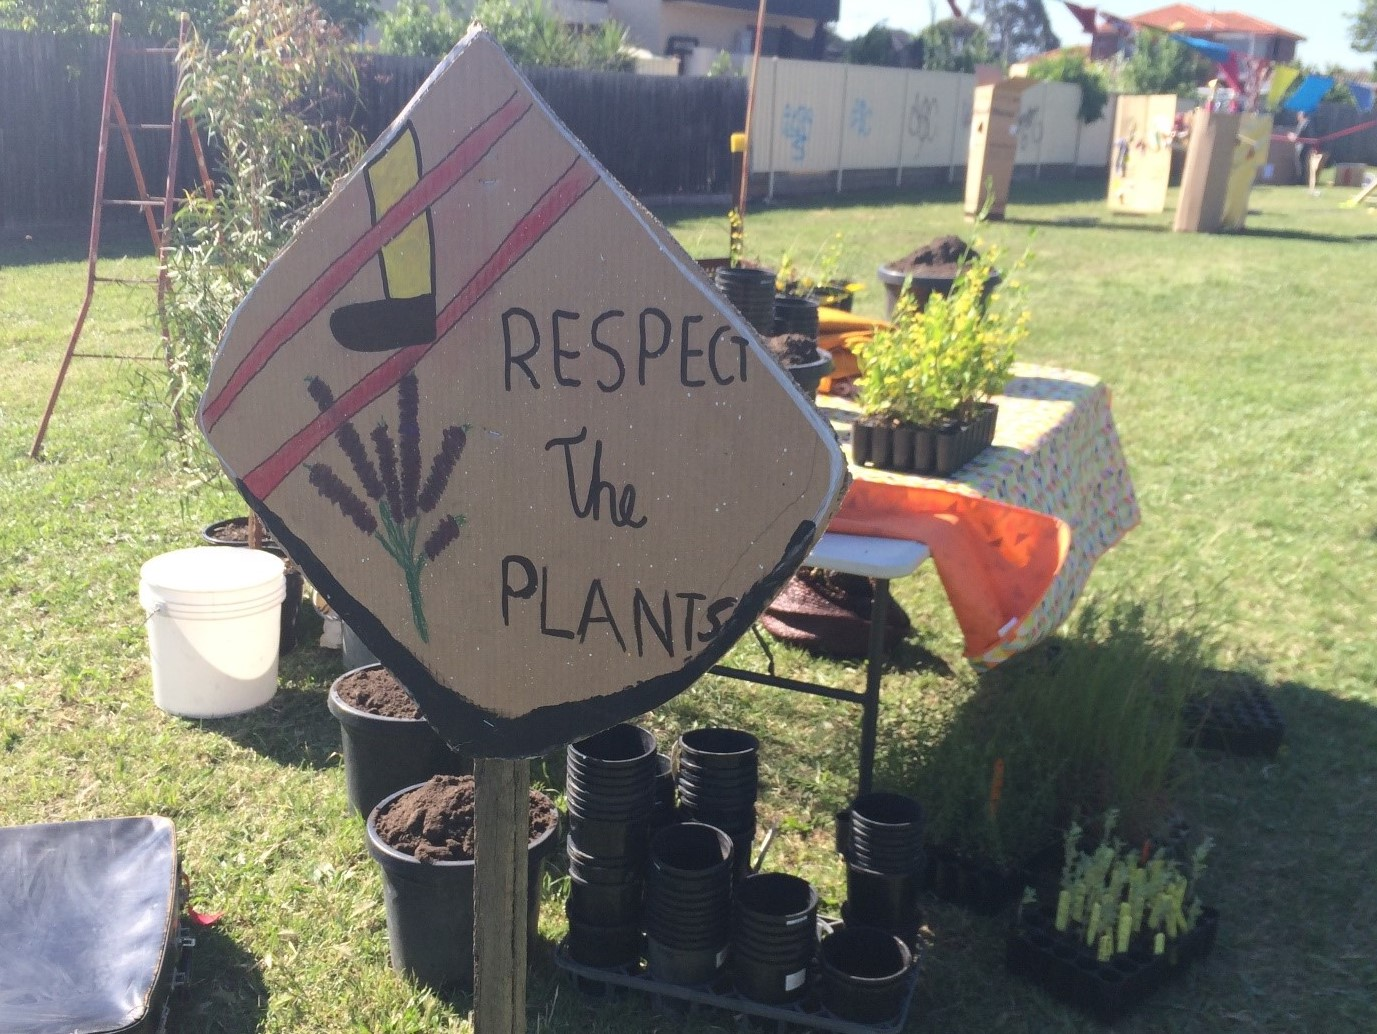 Plants and sign that reads